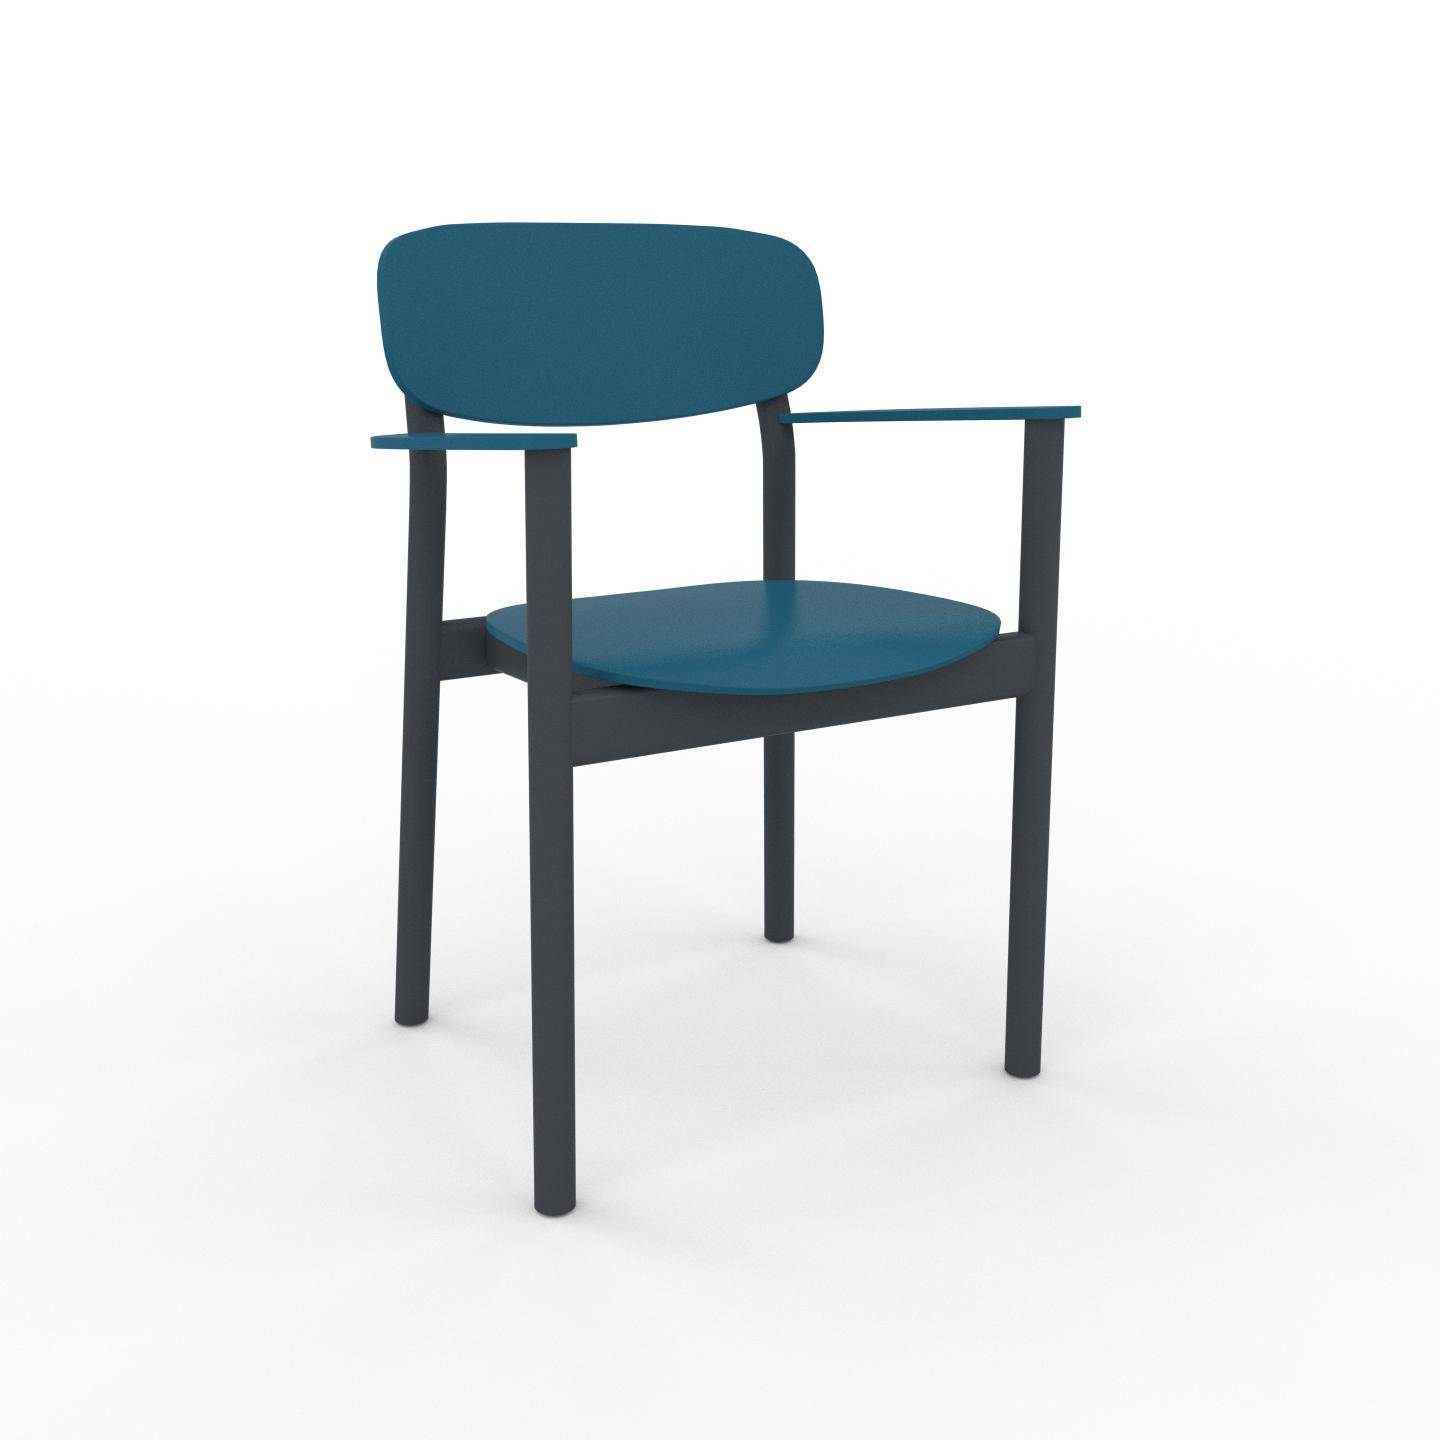 MYCS Chaise bleu de 52 x 82 x 58 cm au design unique, configurable